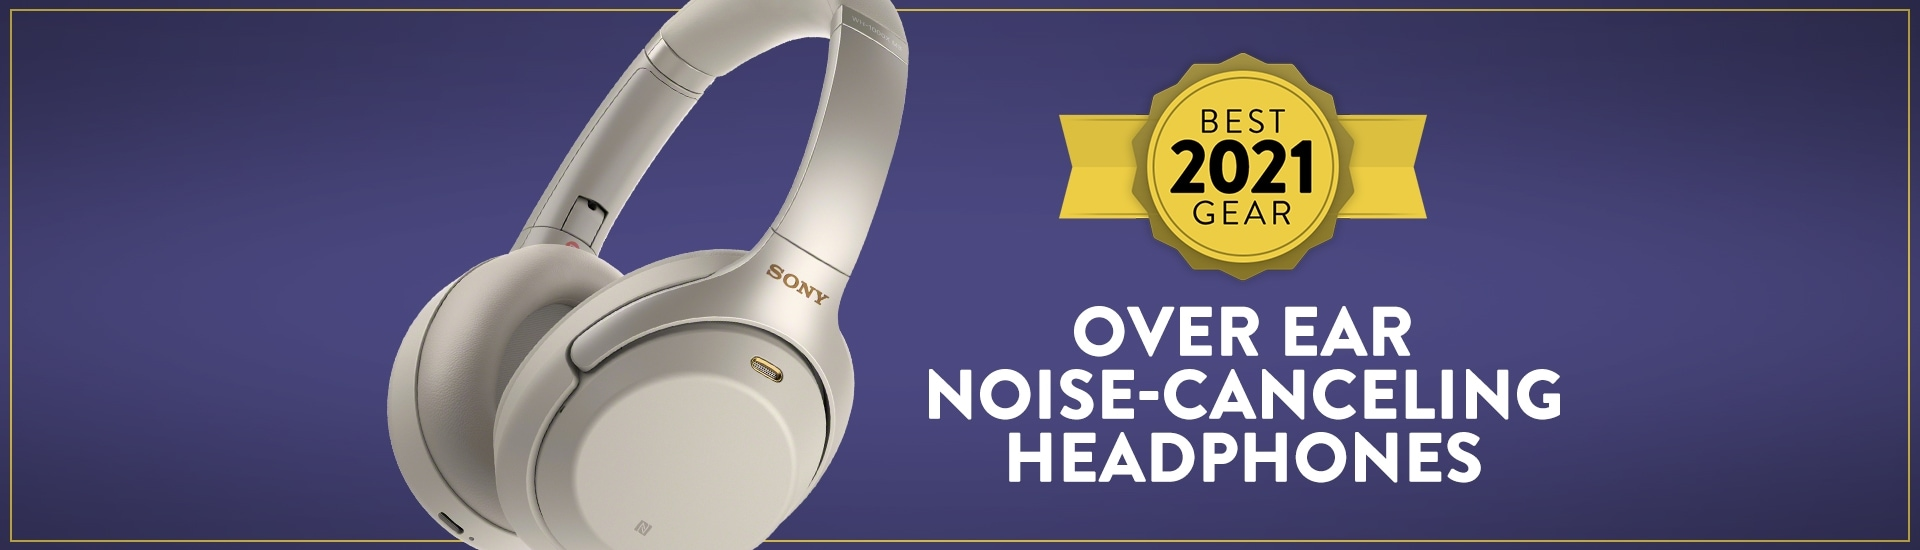 The Best Over Ear Noise-Canceling Headphones of 2021